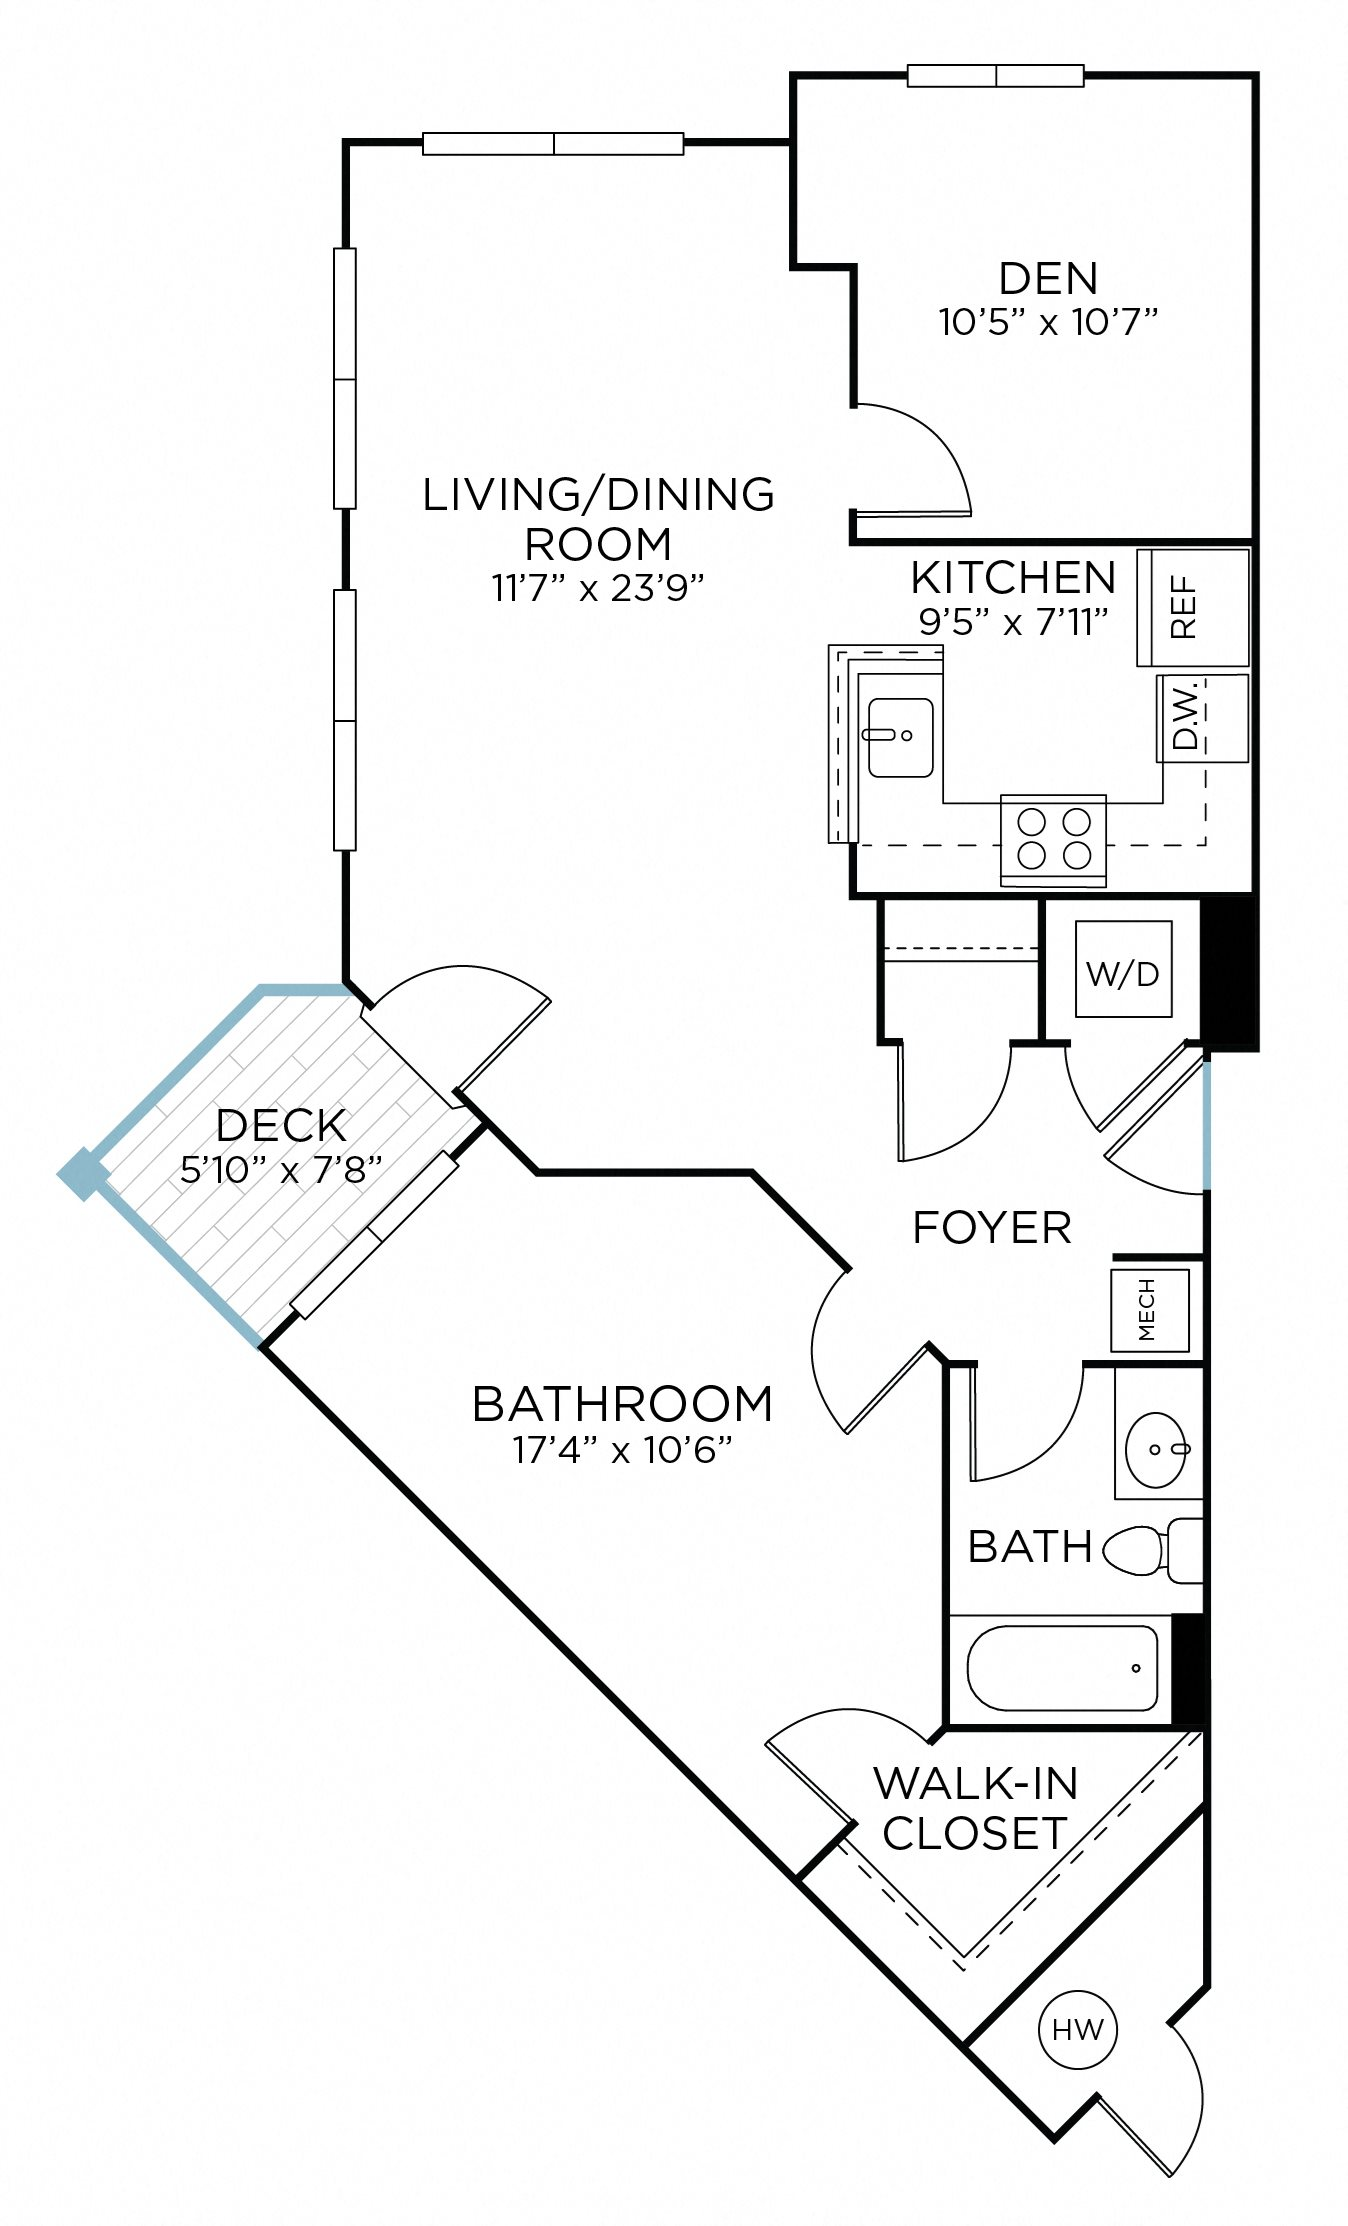 SANDOR One Bedroom/ One Bathroom  with Den (aad1) Floor Plan 3